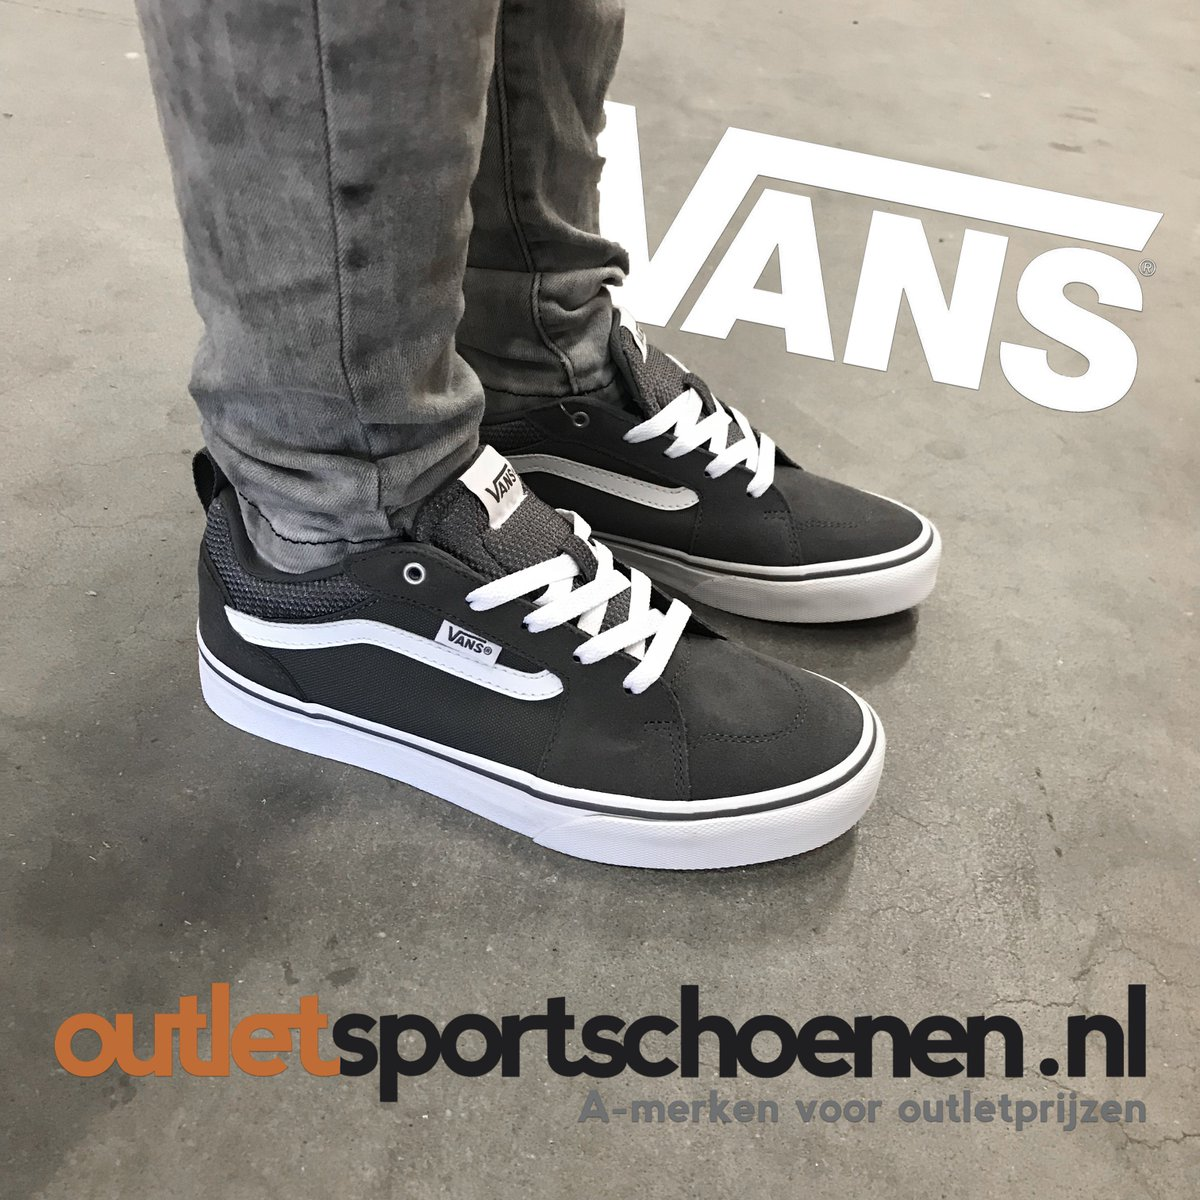 outletsportschoenen on Twitter: